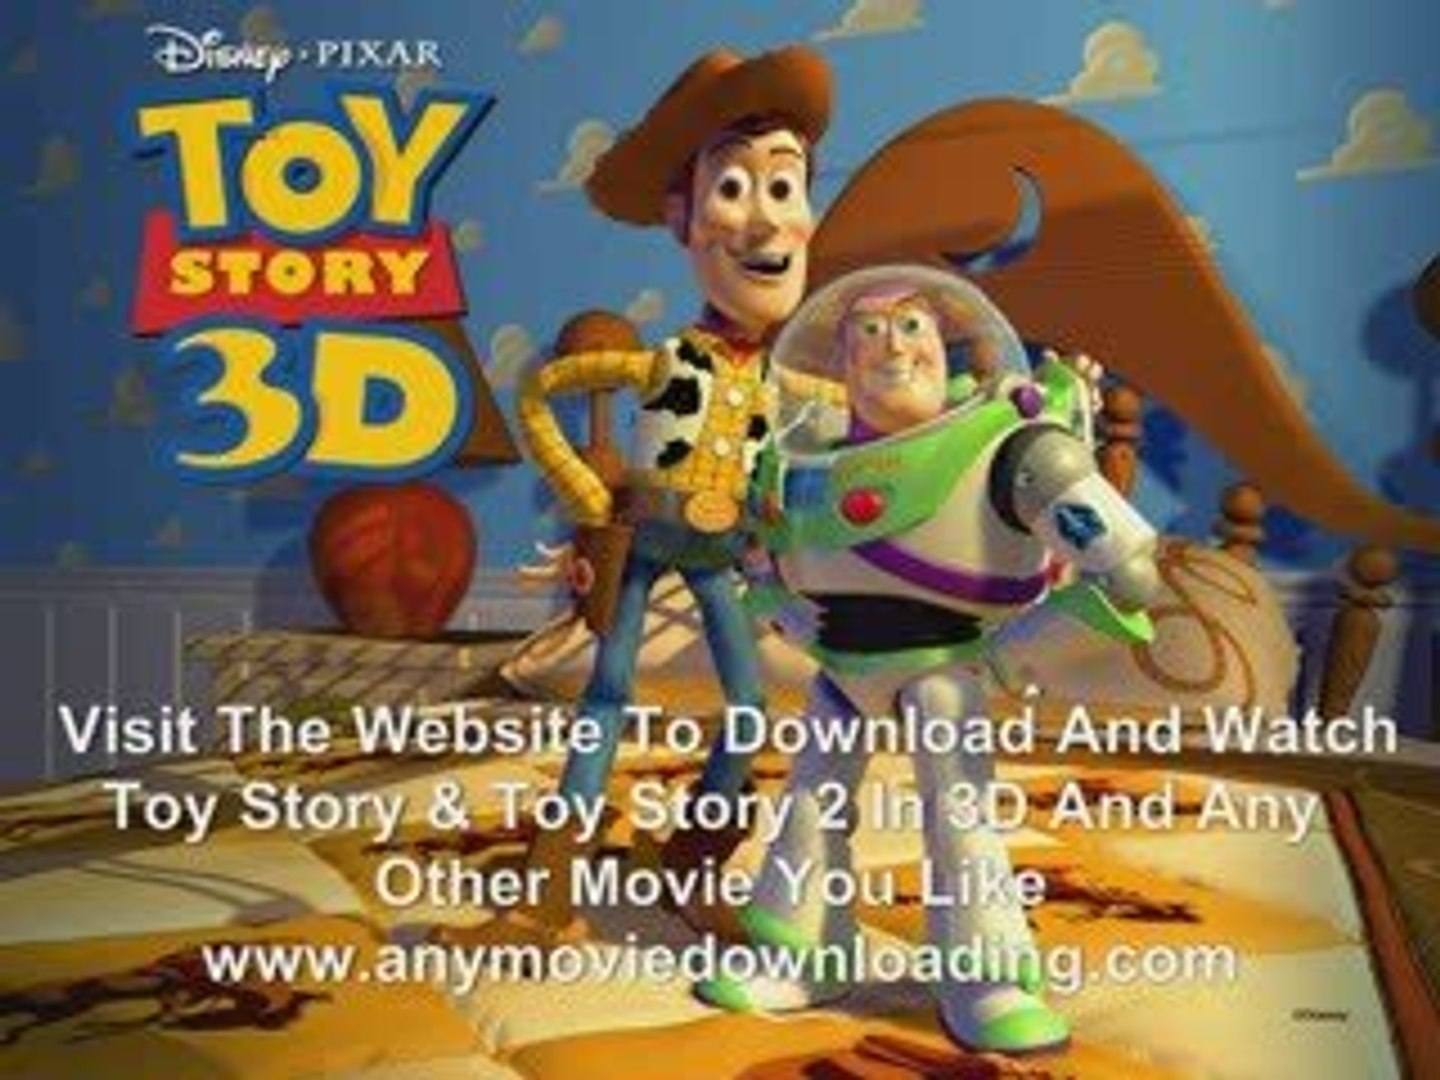 Download Toy Story & Toy Story 2 In 3D Full Movies